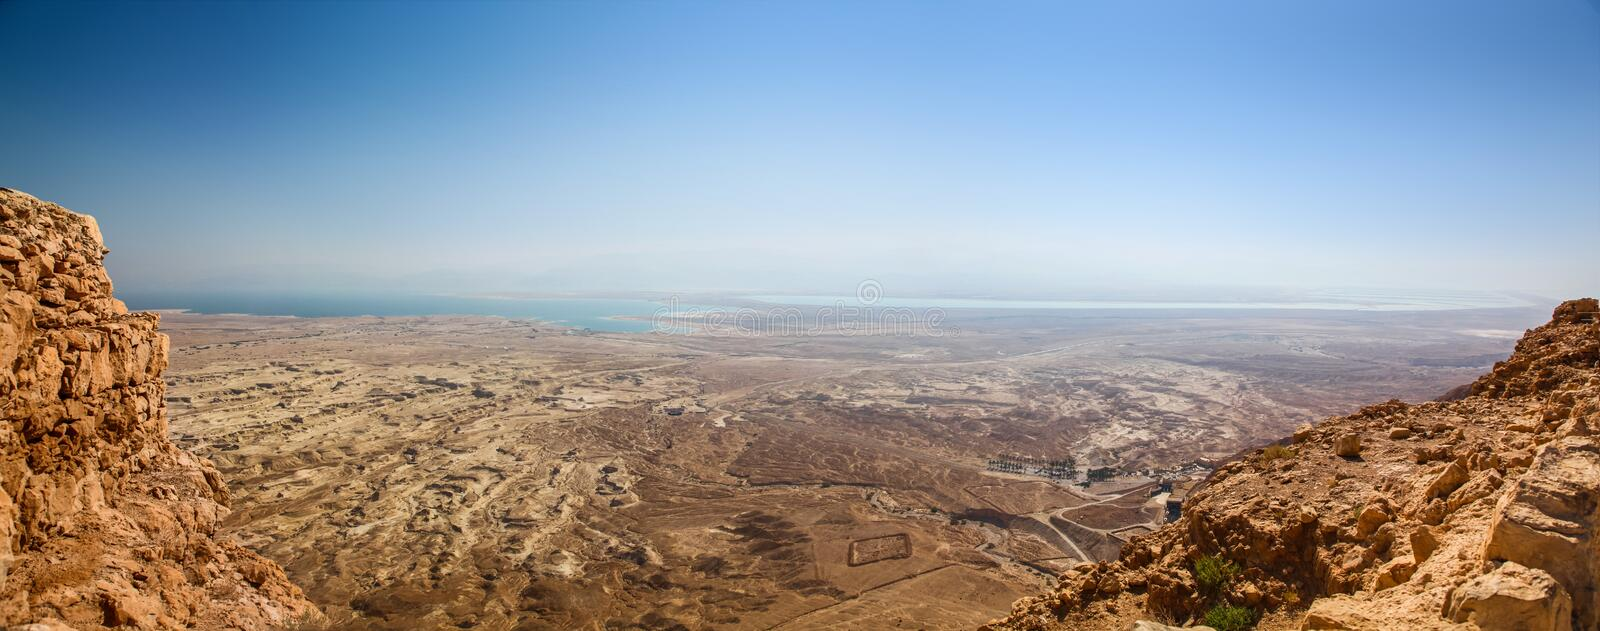 Panoramic view from the top Masada with Dead Sea in the distance stock images